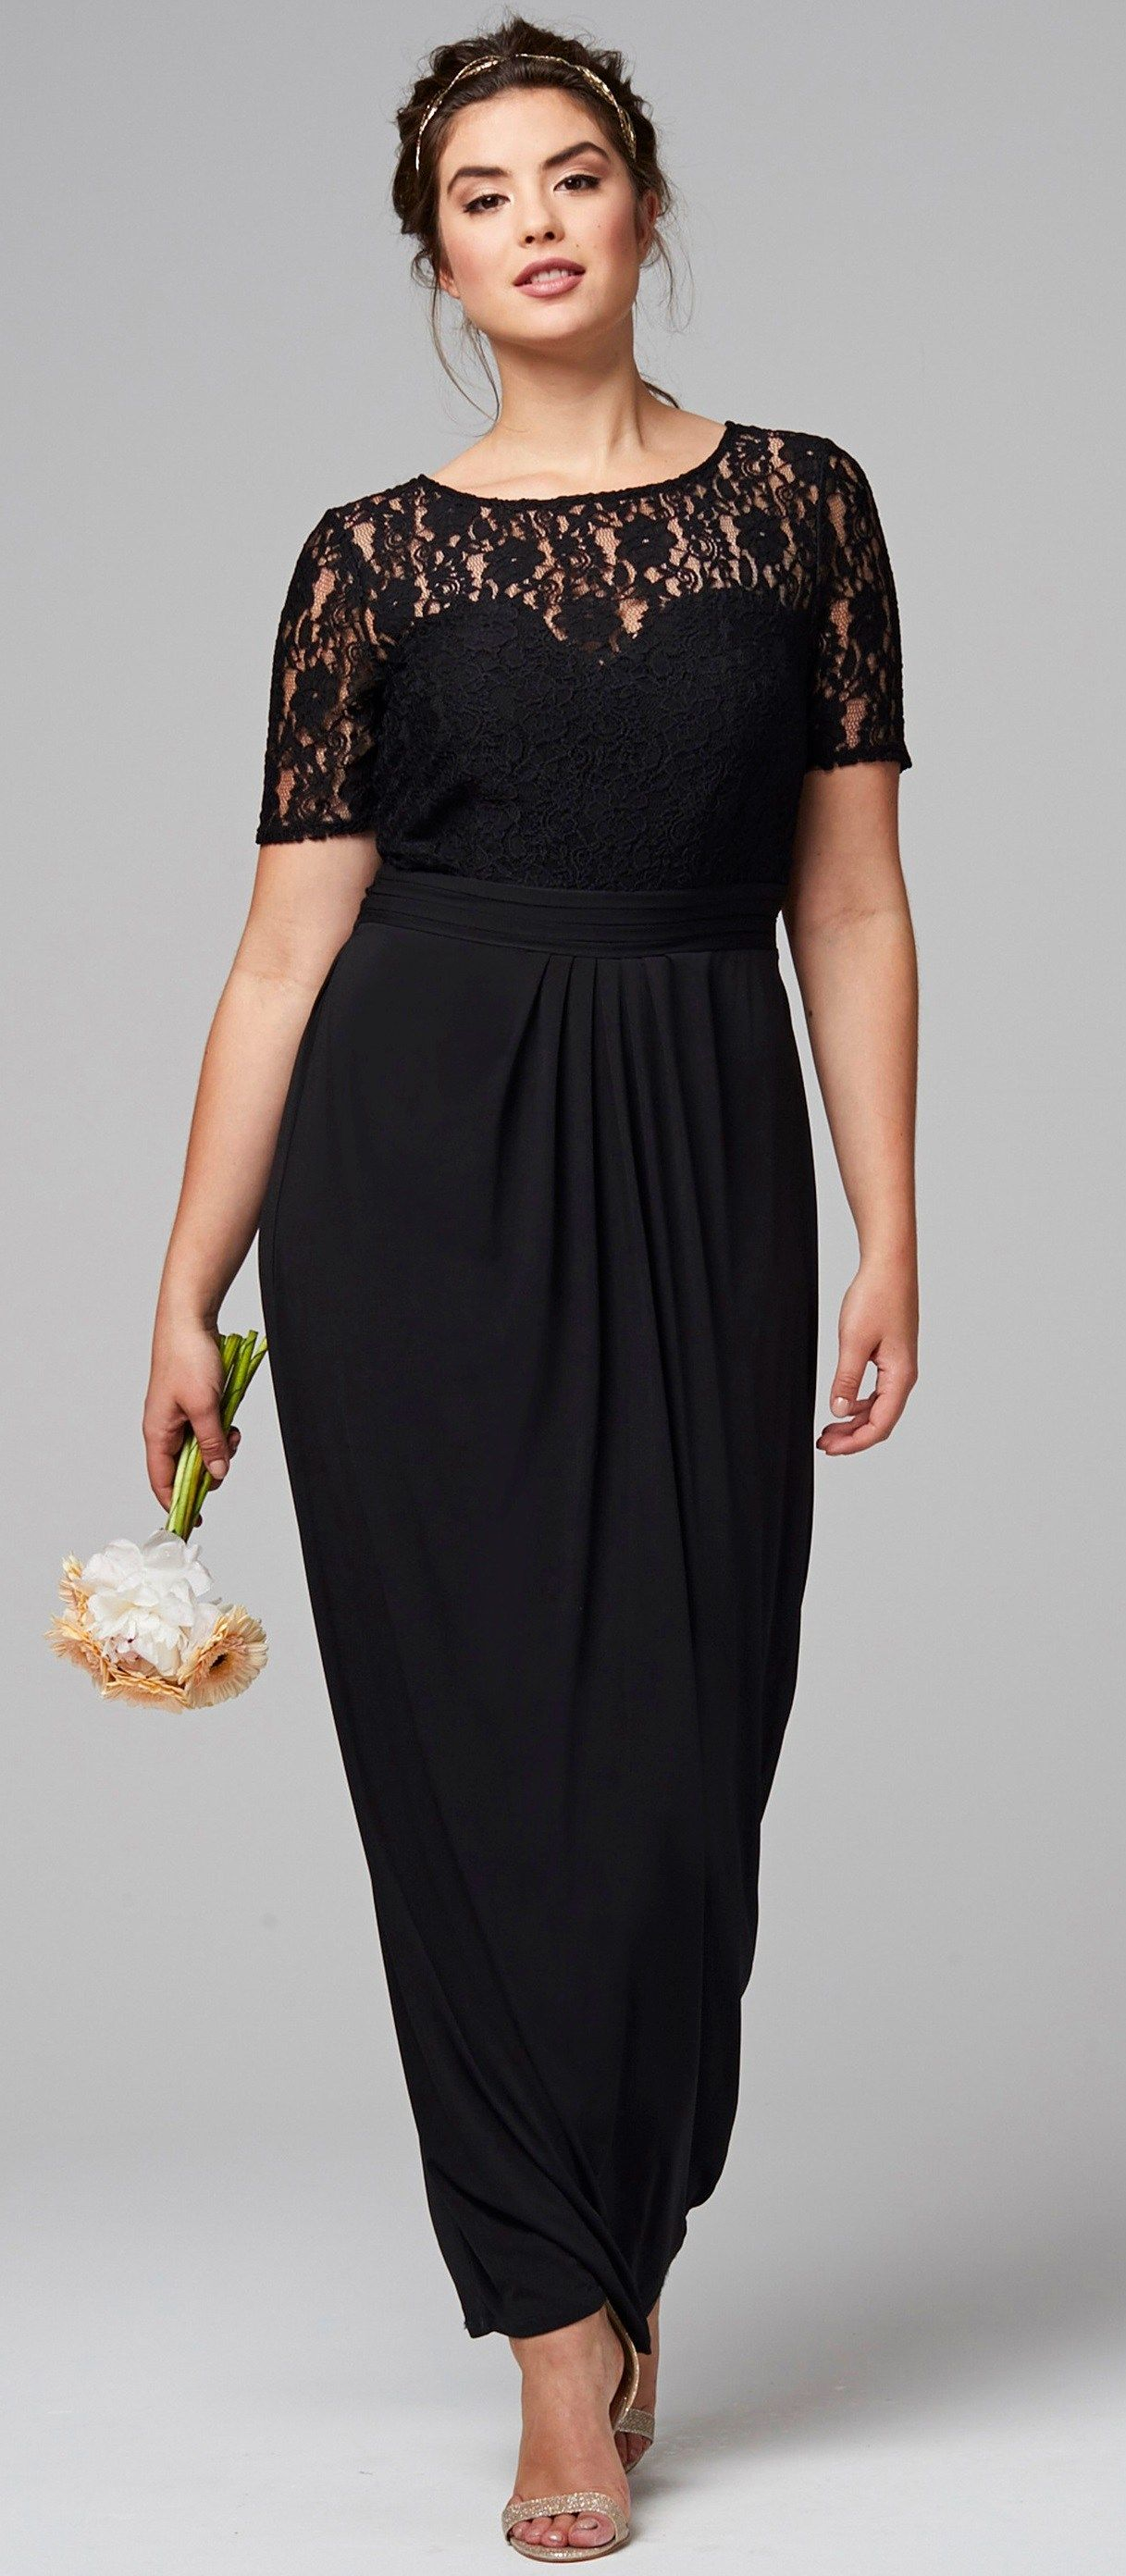 Plus Size Wedding Guest Dresses with Sleeves  WeddingMother of